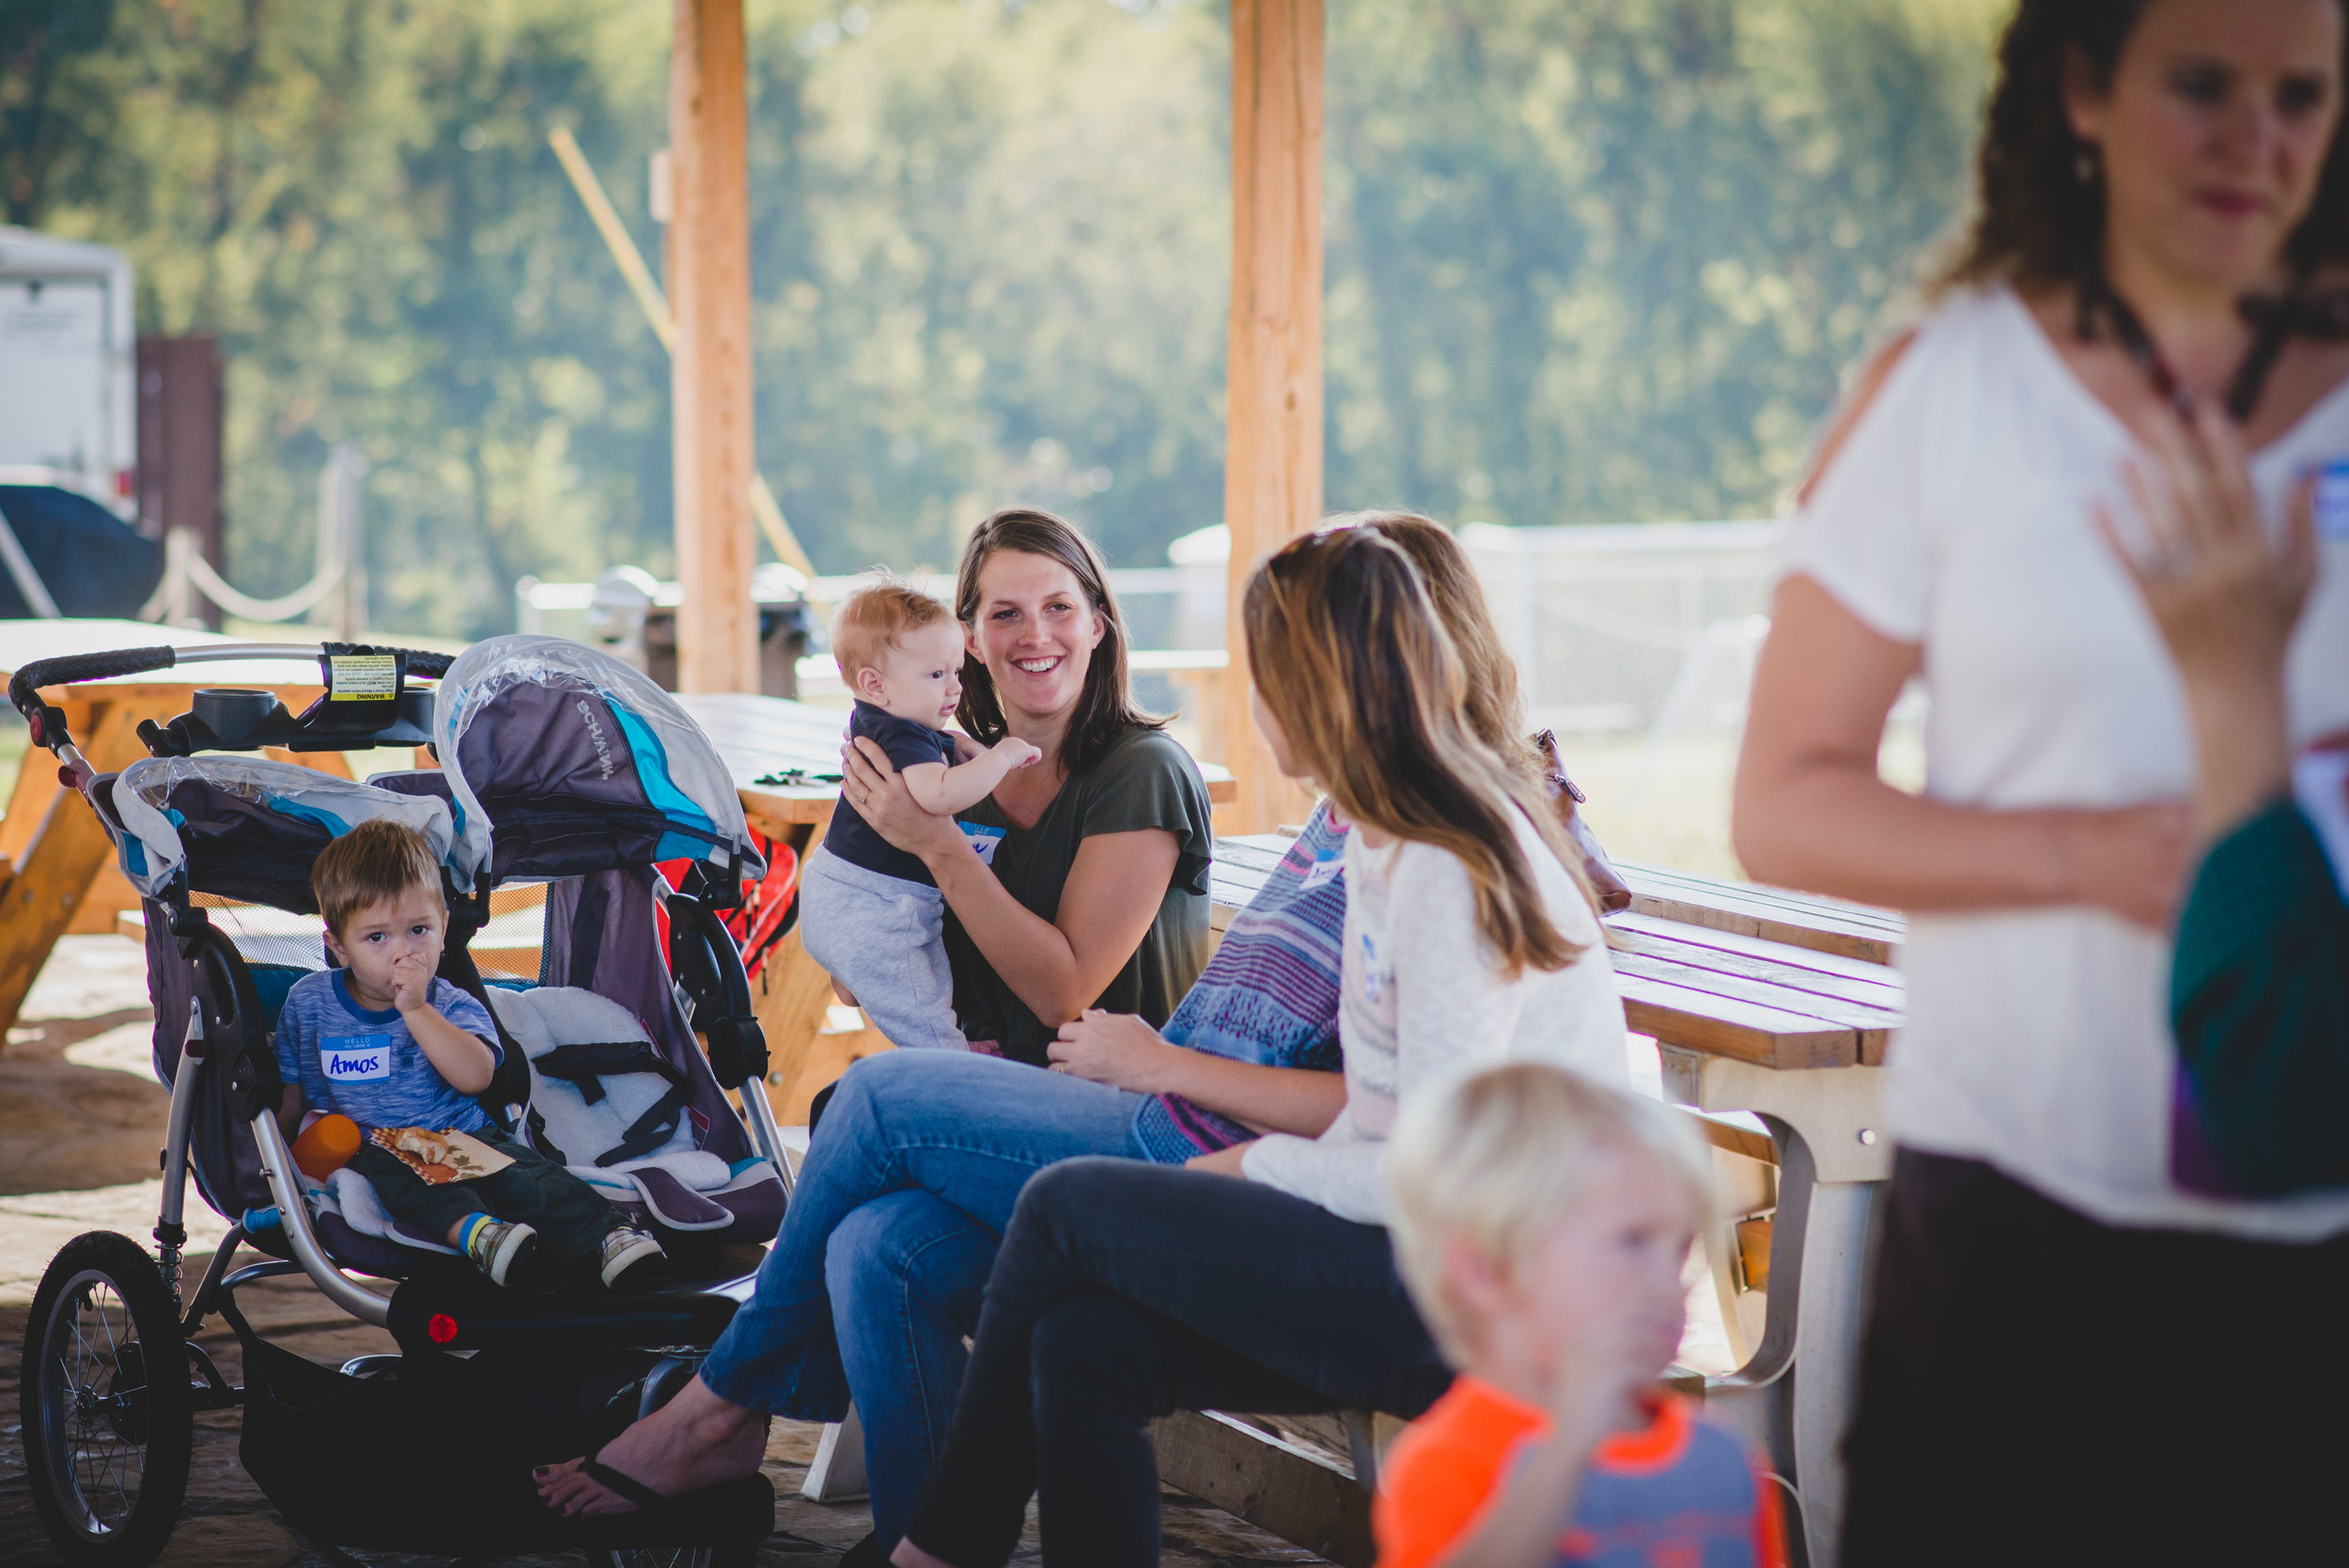 """We love our moms! On the first Friday of each month, our PTO organizes a """"Mom's Coffee Hour"""" where mothers can come after morning drop-off to enjoy coffee and fellowship with one another. These times are unifying and helpful as moms grow in friendships alongside their kids!"""